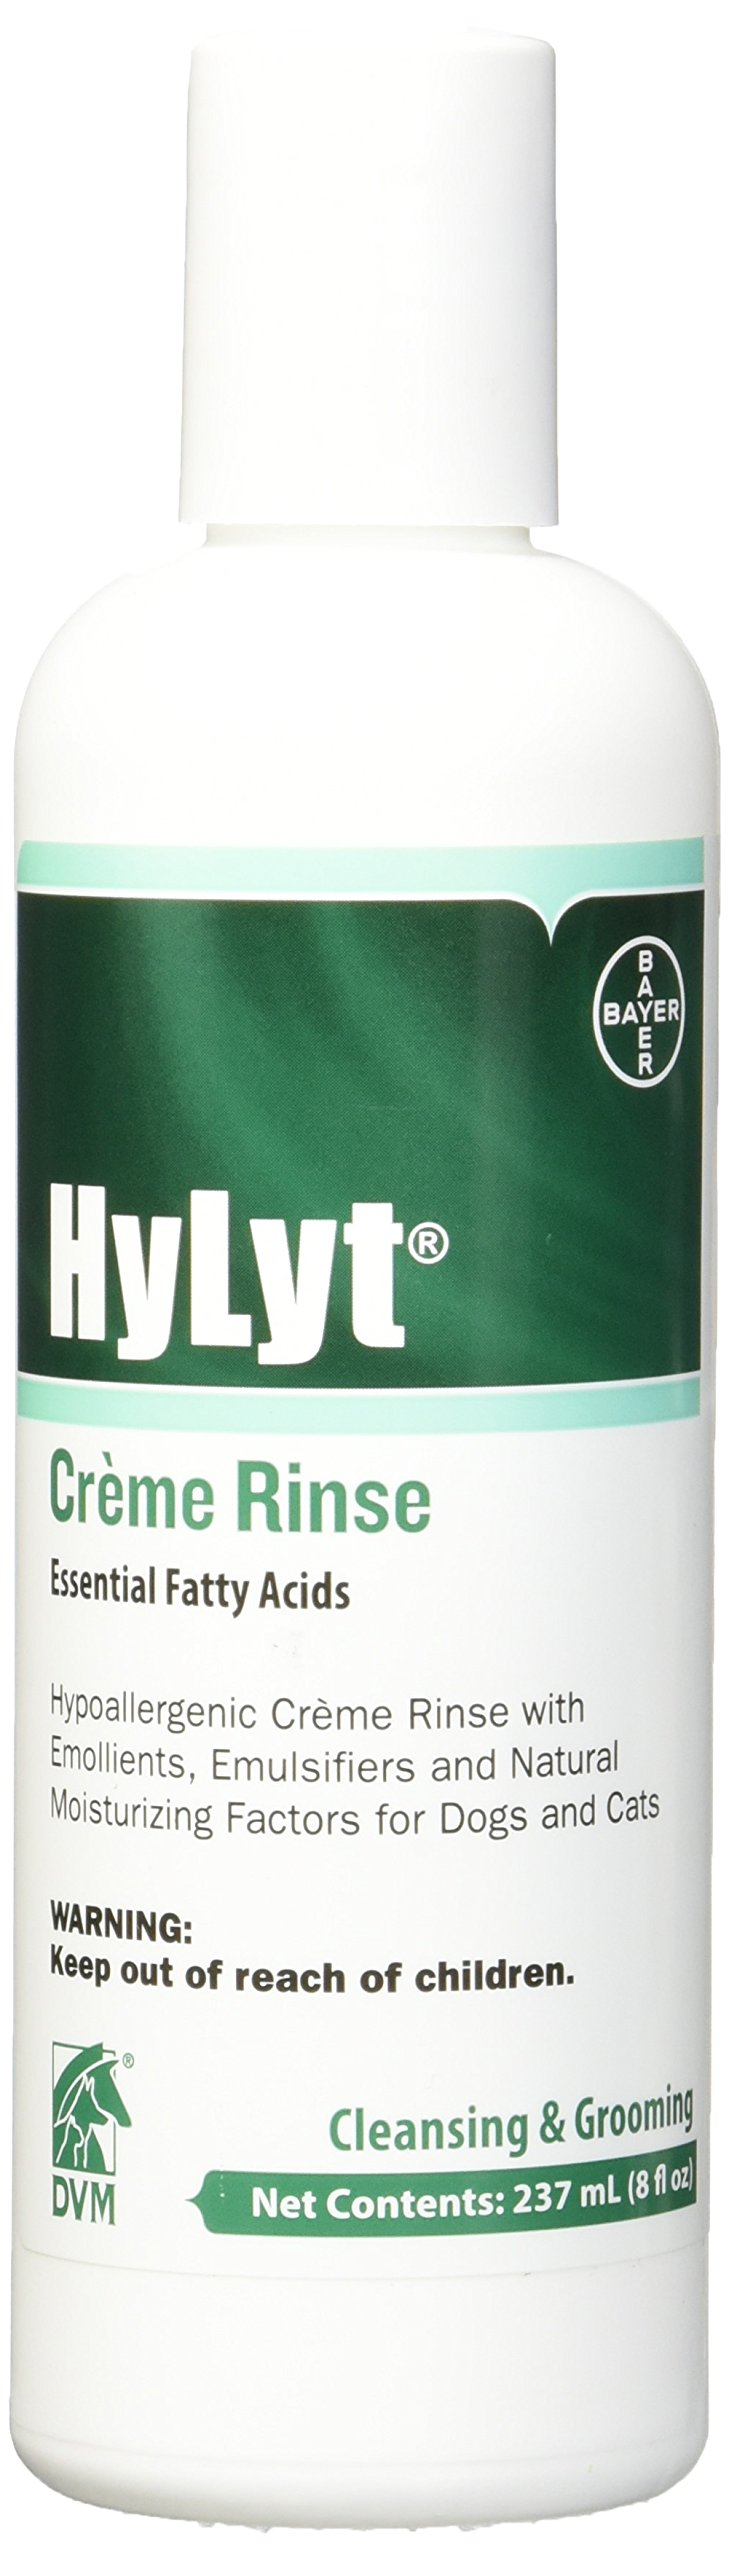 DVM Pharmaceuticals Hylyt Cream Rinse Pet Conditioner, 8-Ounce